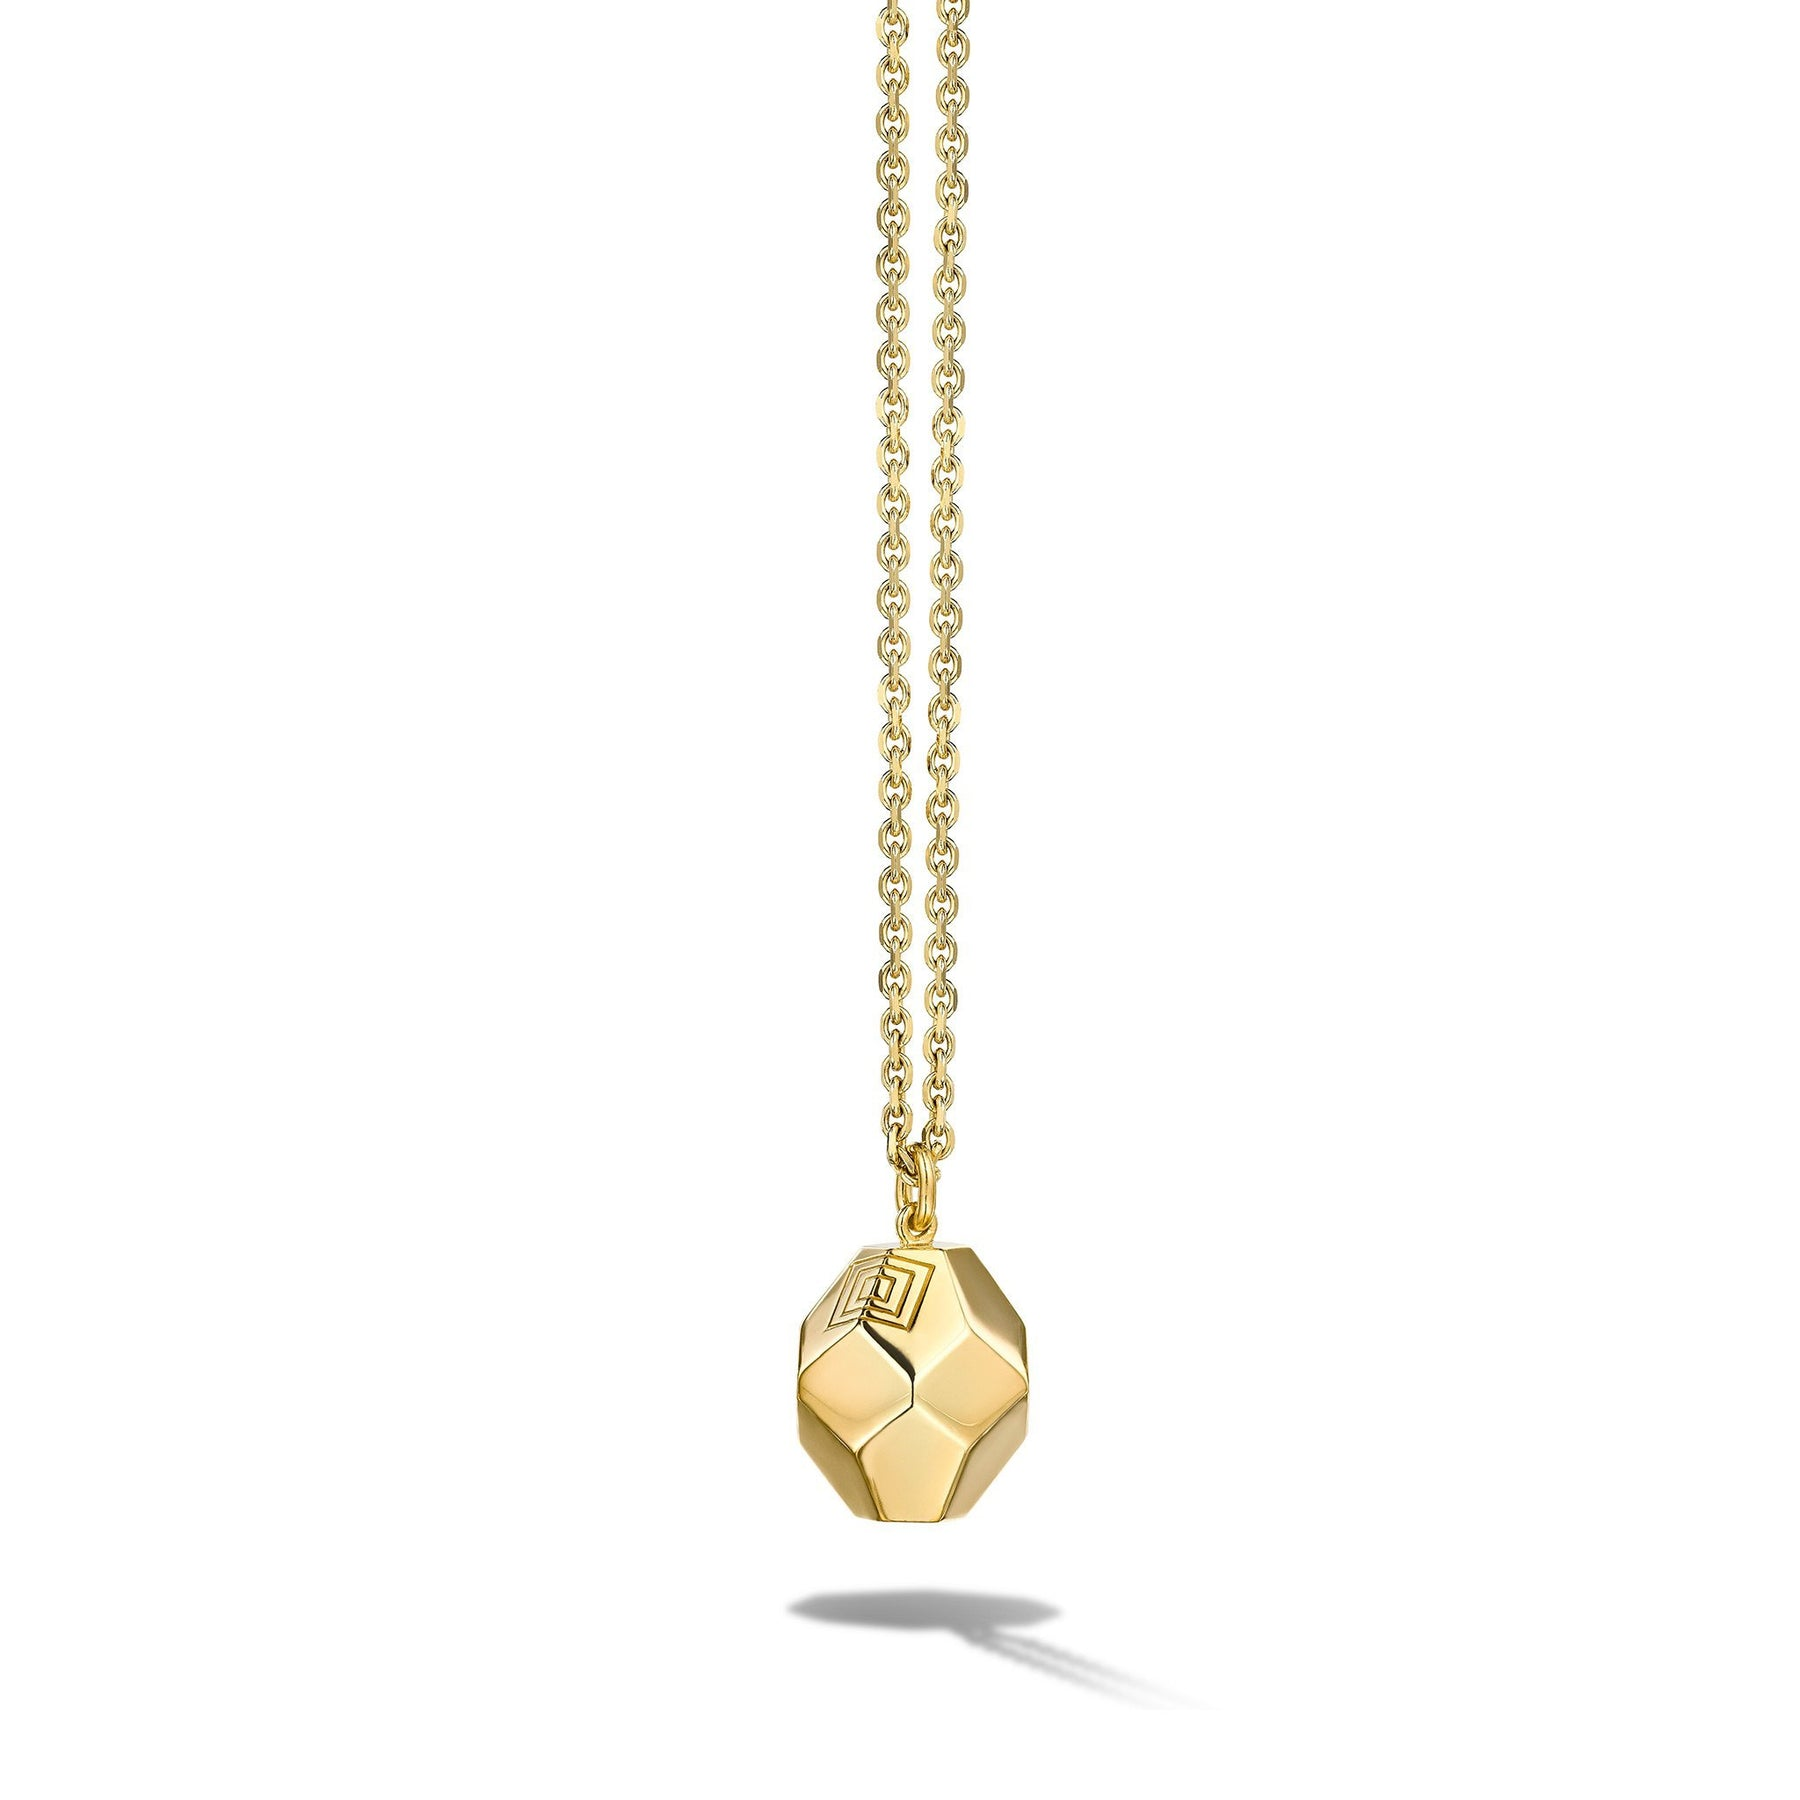 Mimi-So-Jackson-Collection-Ludlow-Rock-Necklace-Medium_18k Yellow Gold